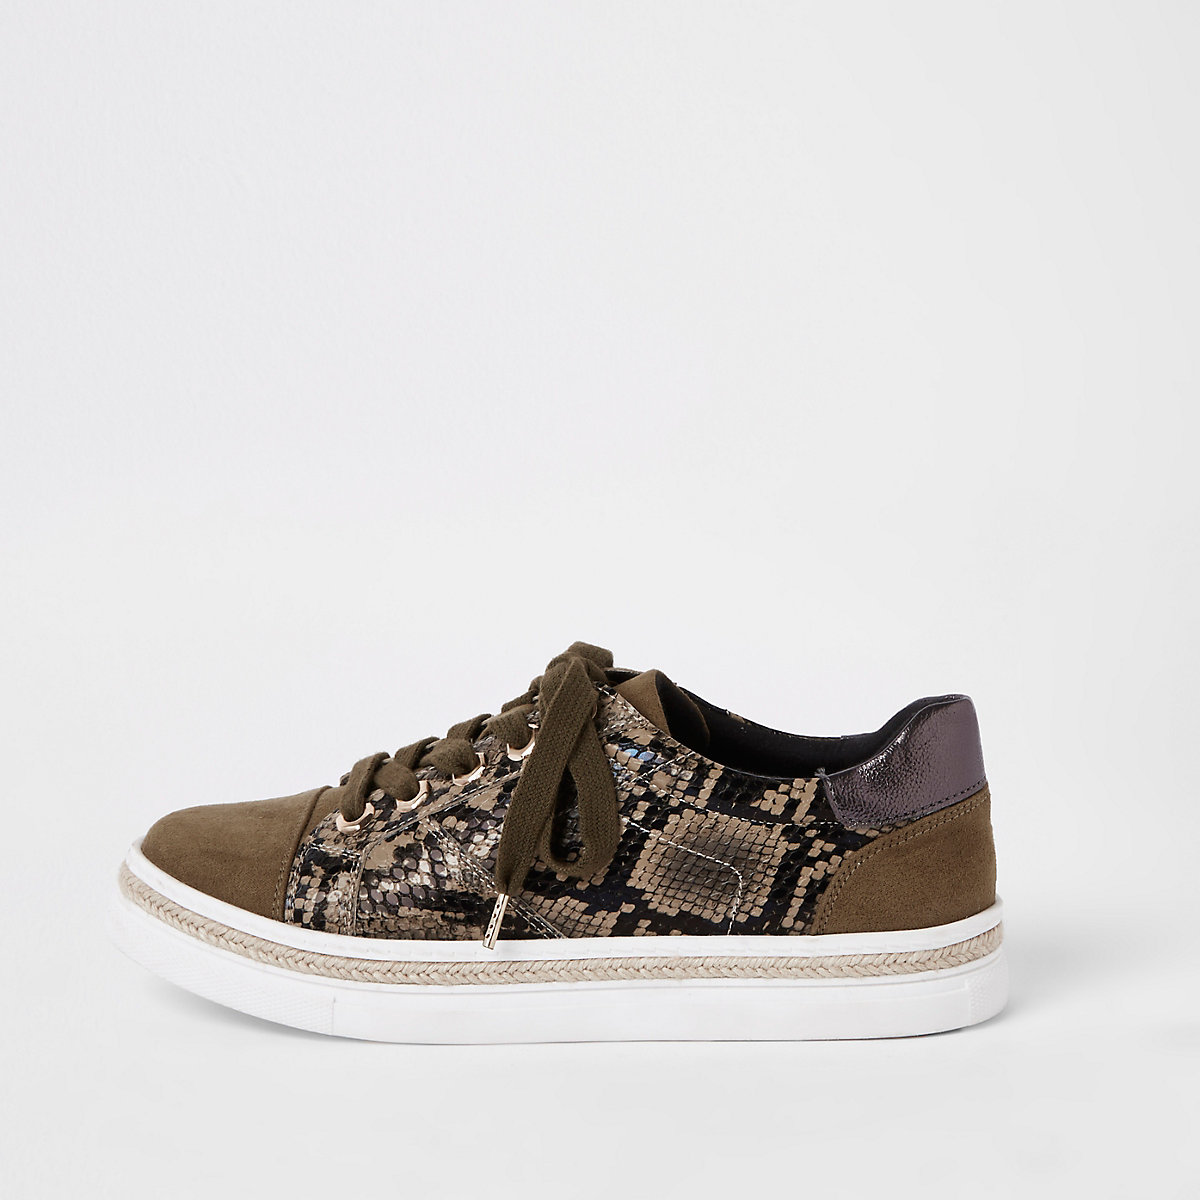 Khaki snake print lace-up trainers